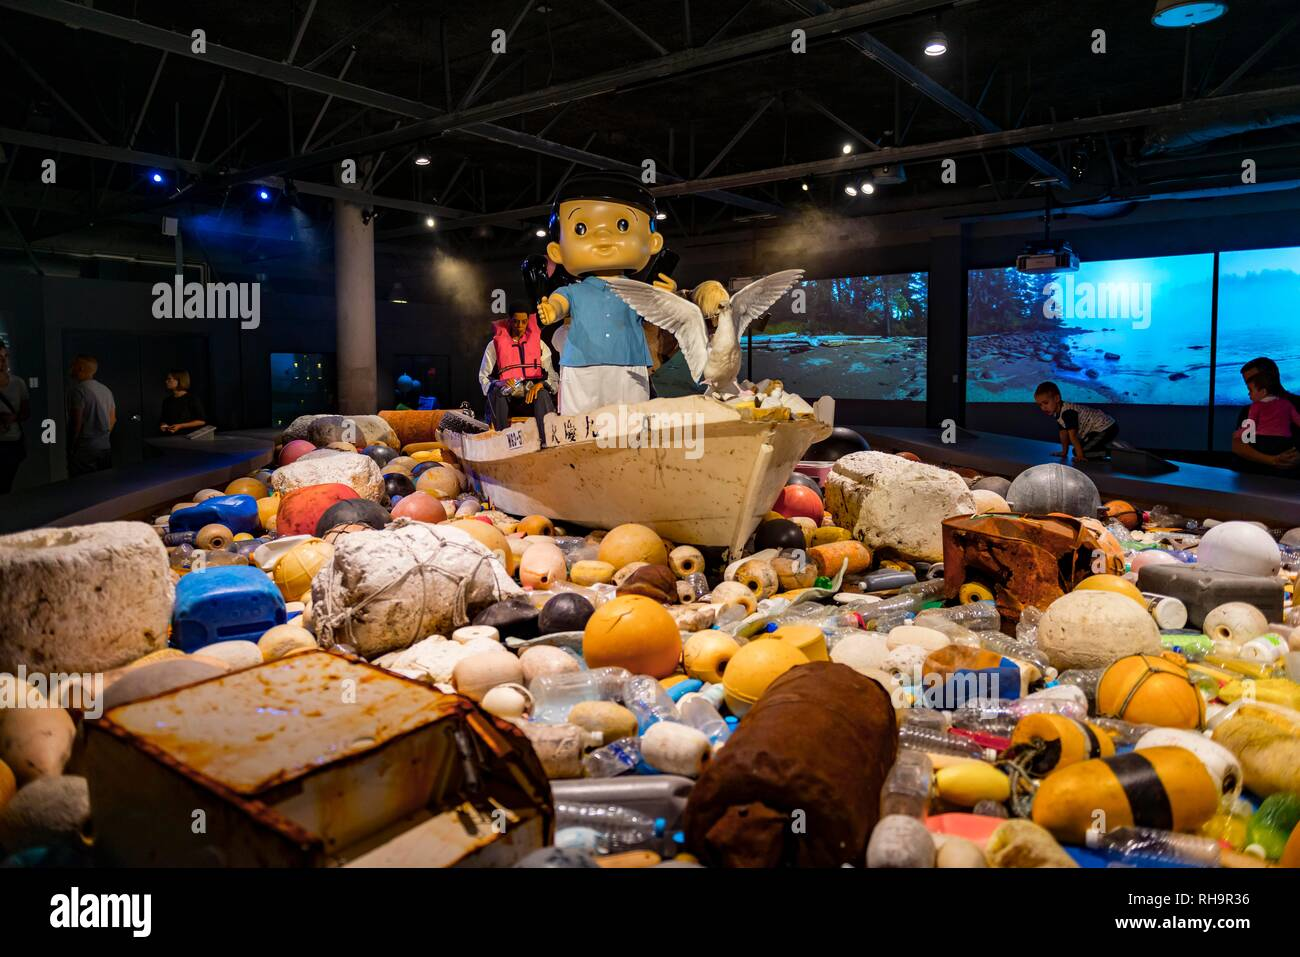 Inquinamento, scultura in mare, artwork da Douglas Coupland, Aquarium di Vancouver, British Columbia, Canada Immagini Stock